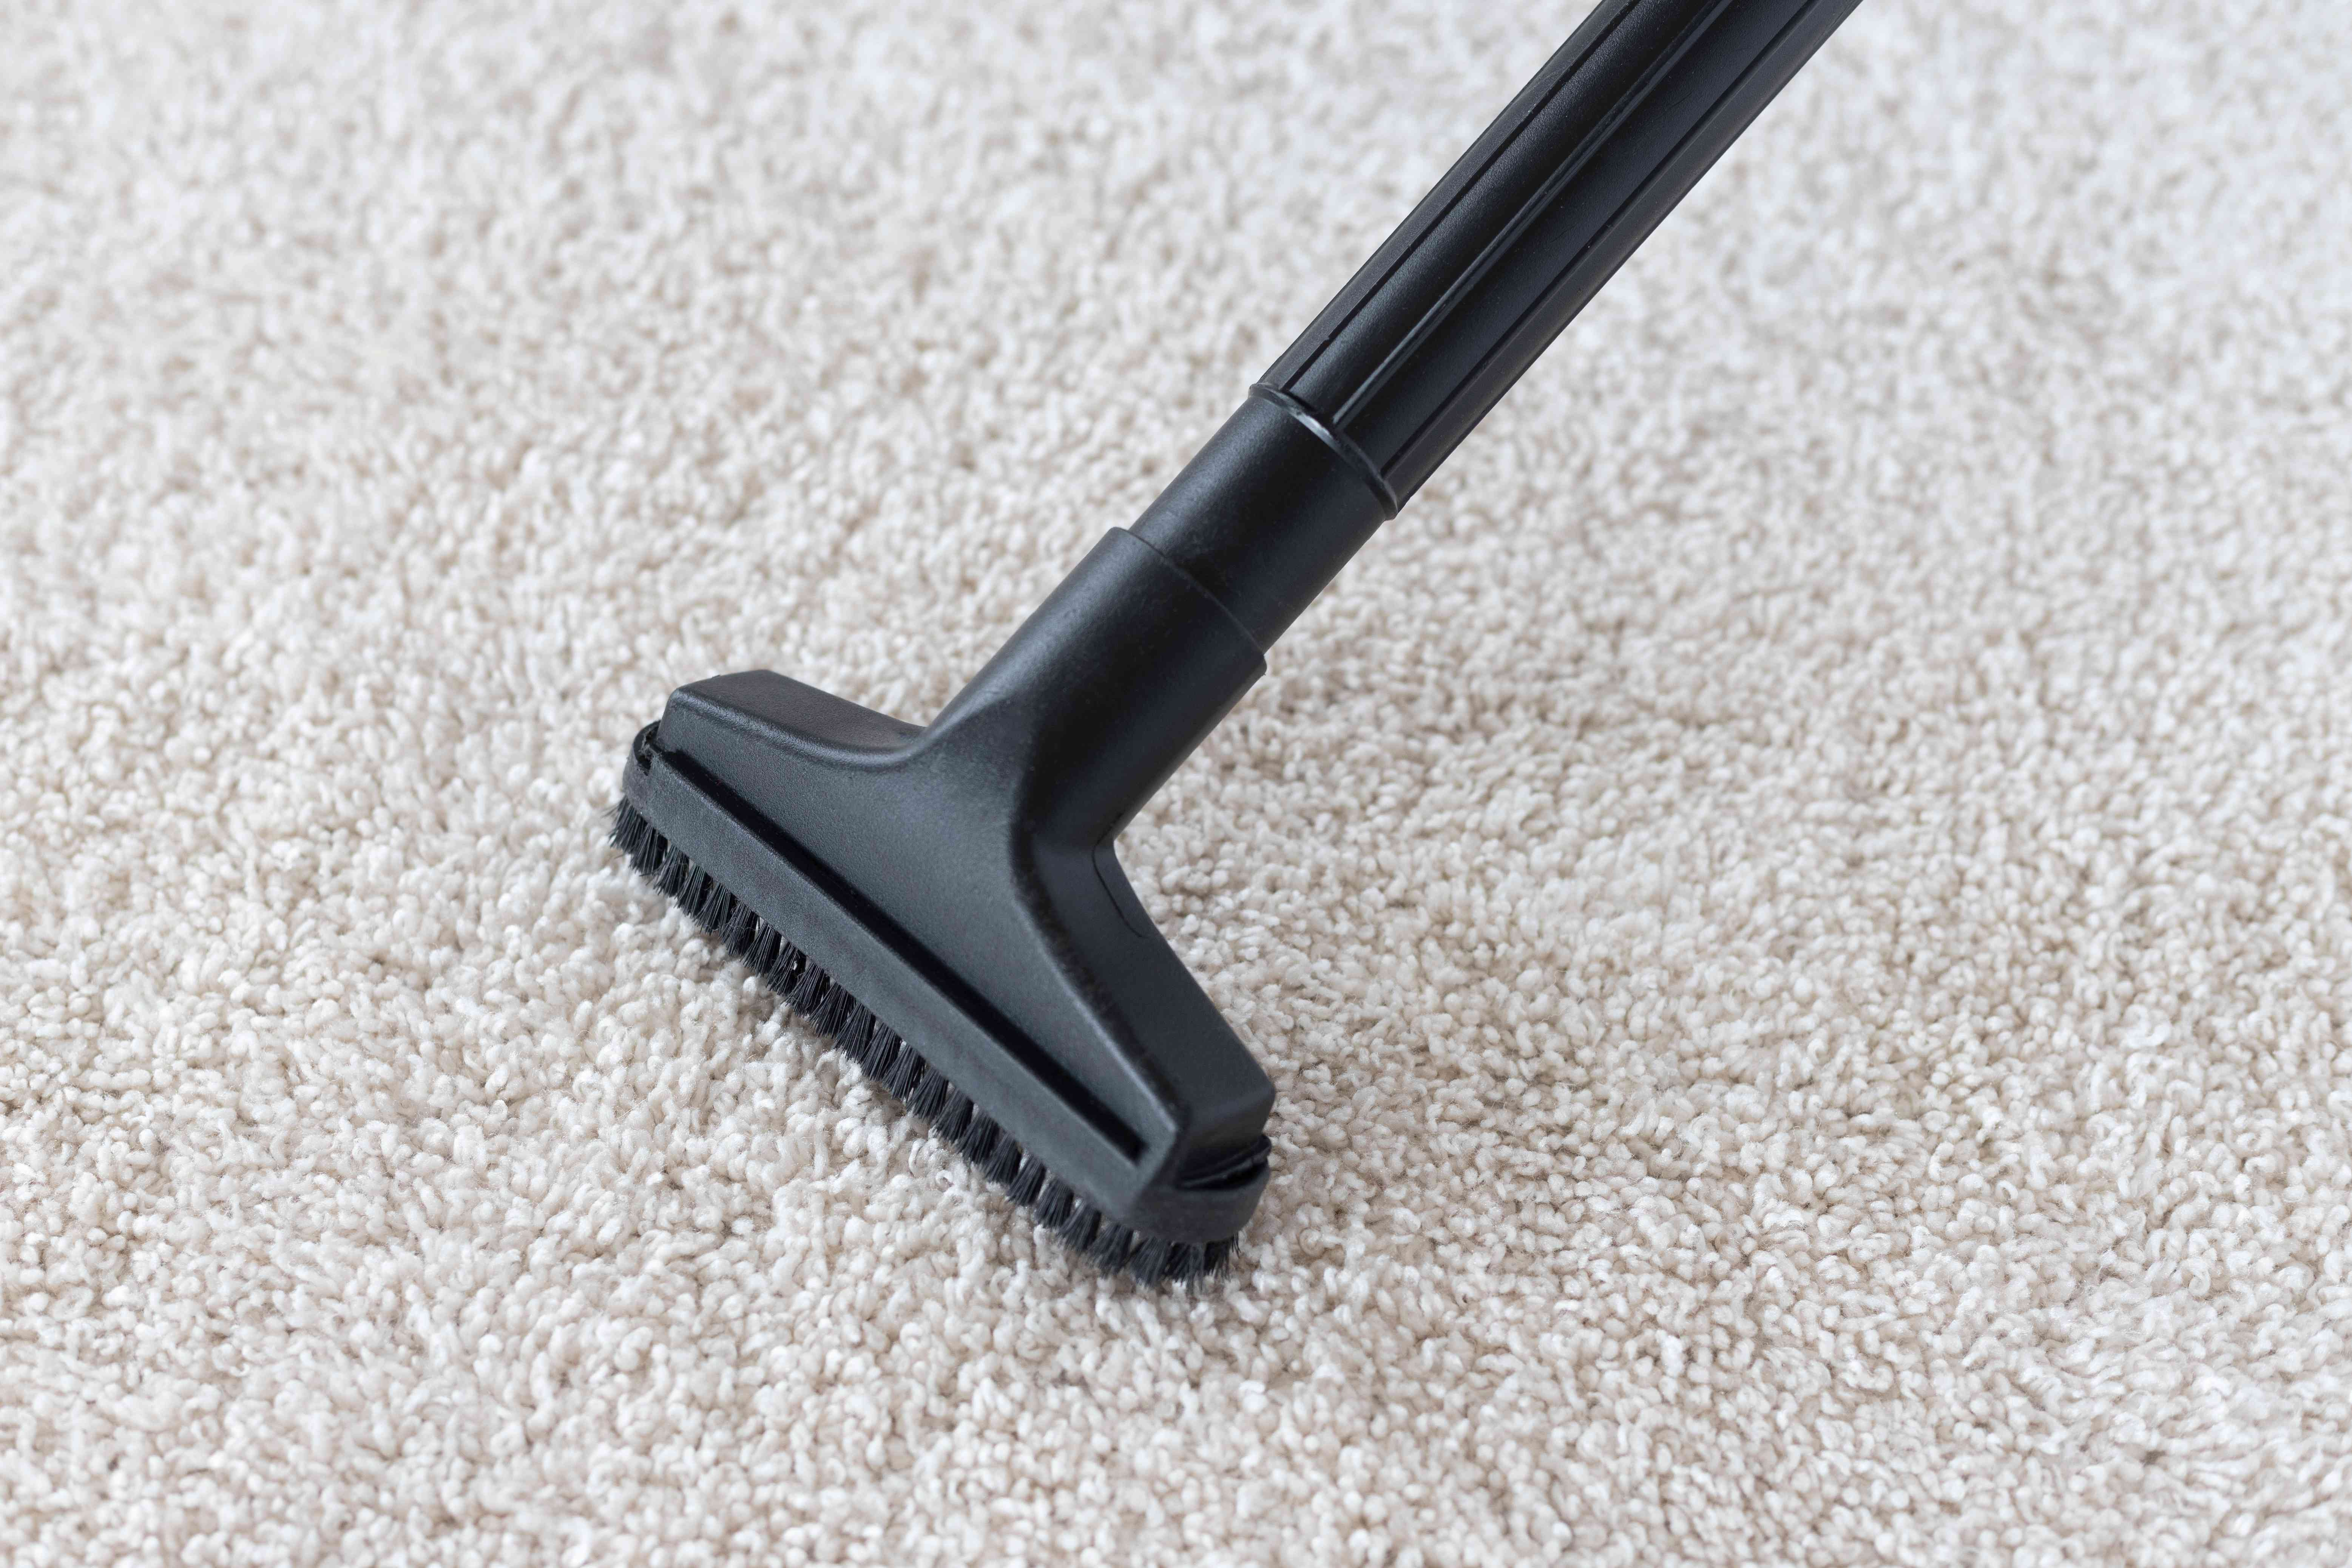 Cleaned carpet with vacuum to remove dry